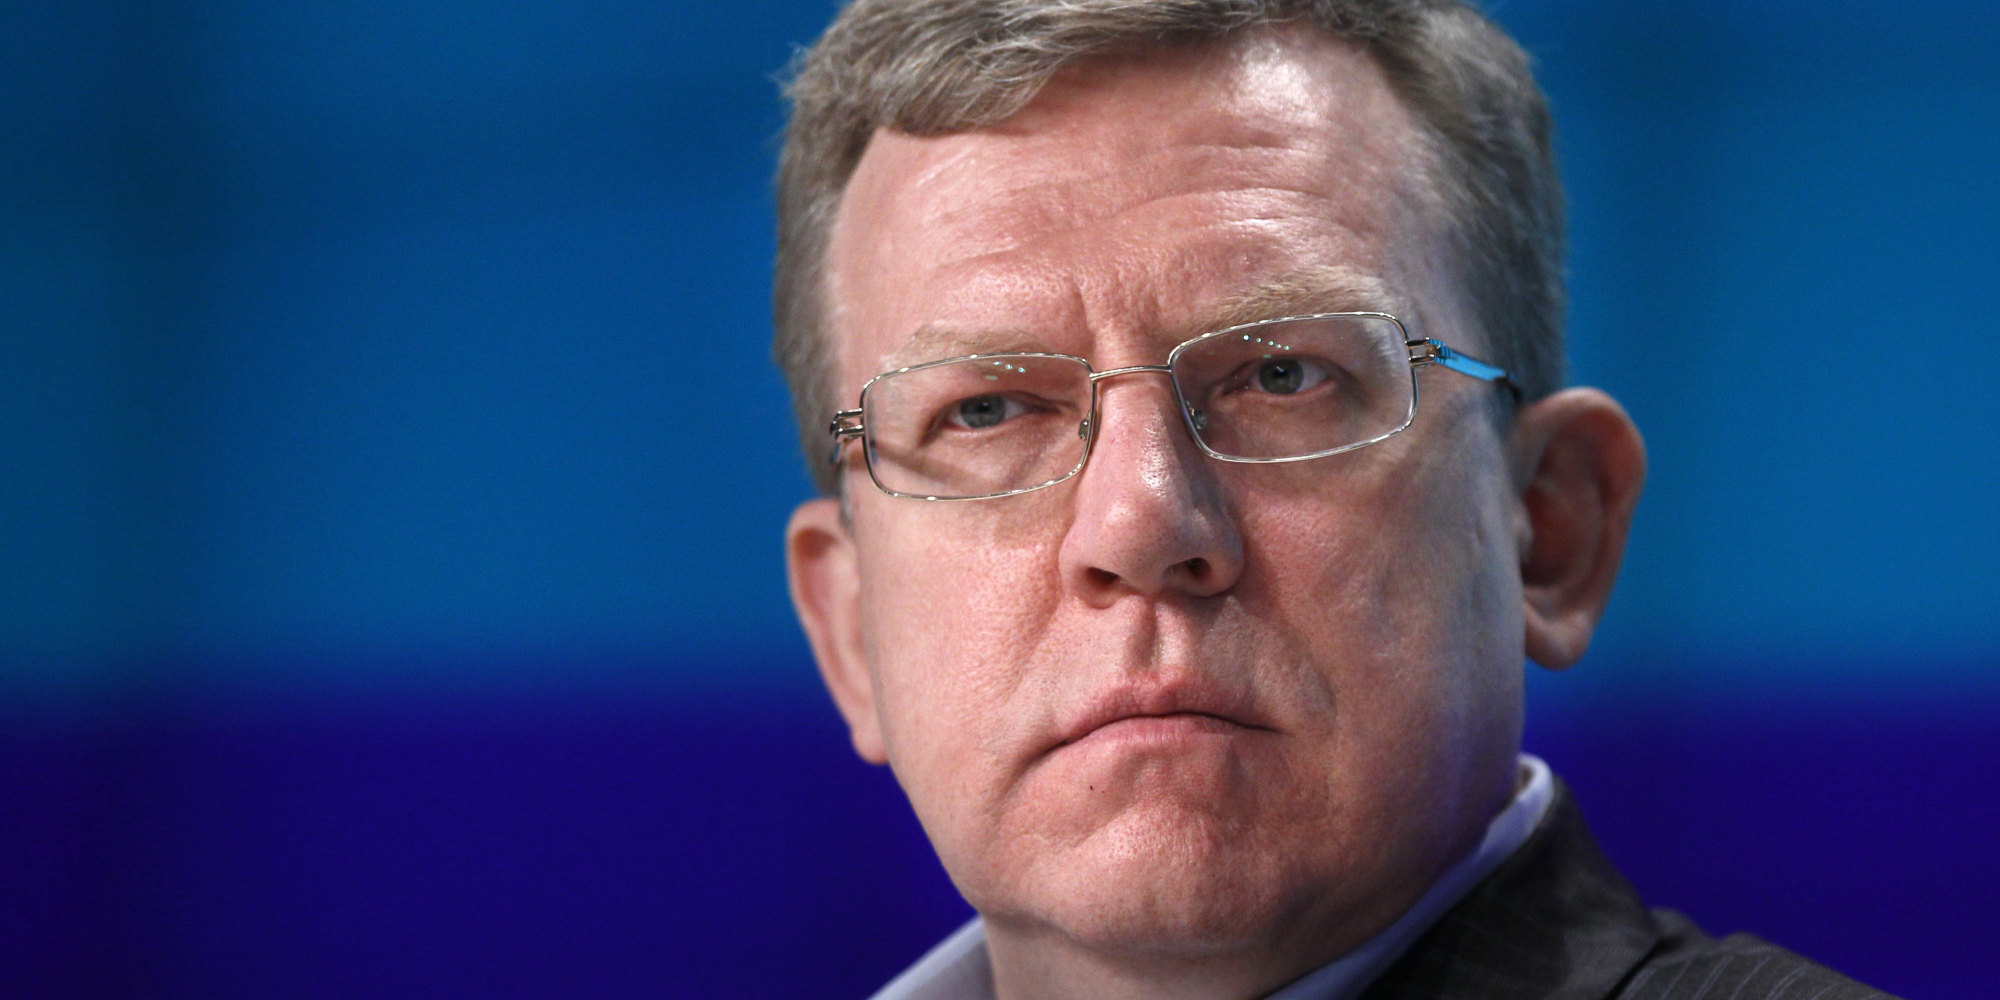 Russia's former Finance Minister Alexei Kudrin speaks during a news conference in Moscow, Russia, Thursday, May 24, 2012. Kudrin, Russia's former long-serving finance minister, has warned that Russia could face a dramatic drop in its GDP in case of a Greek default and a broader European debt crisis. (AP Photo/Mikhail Metzel)